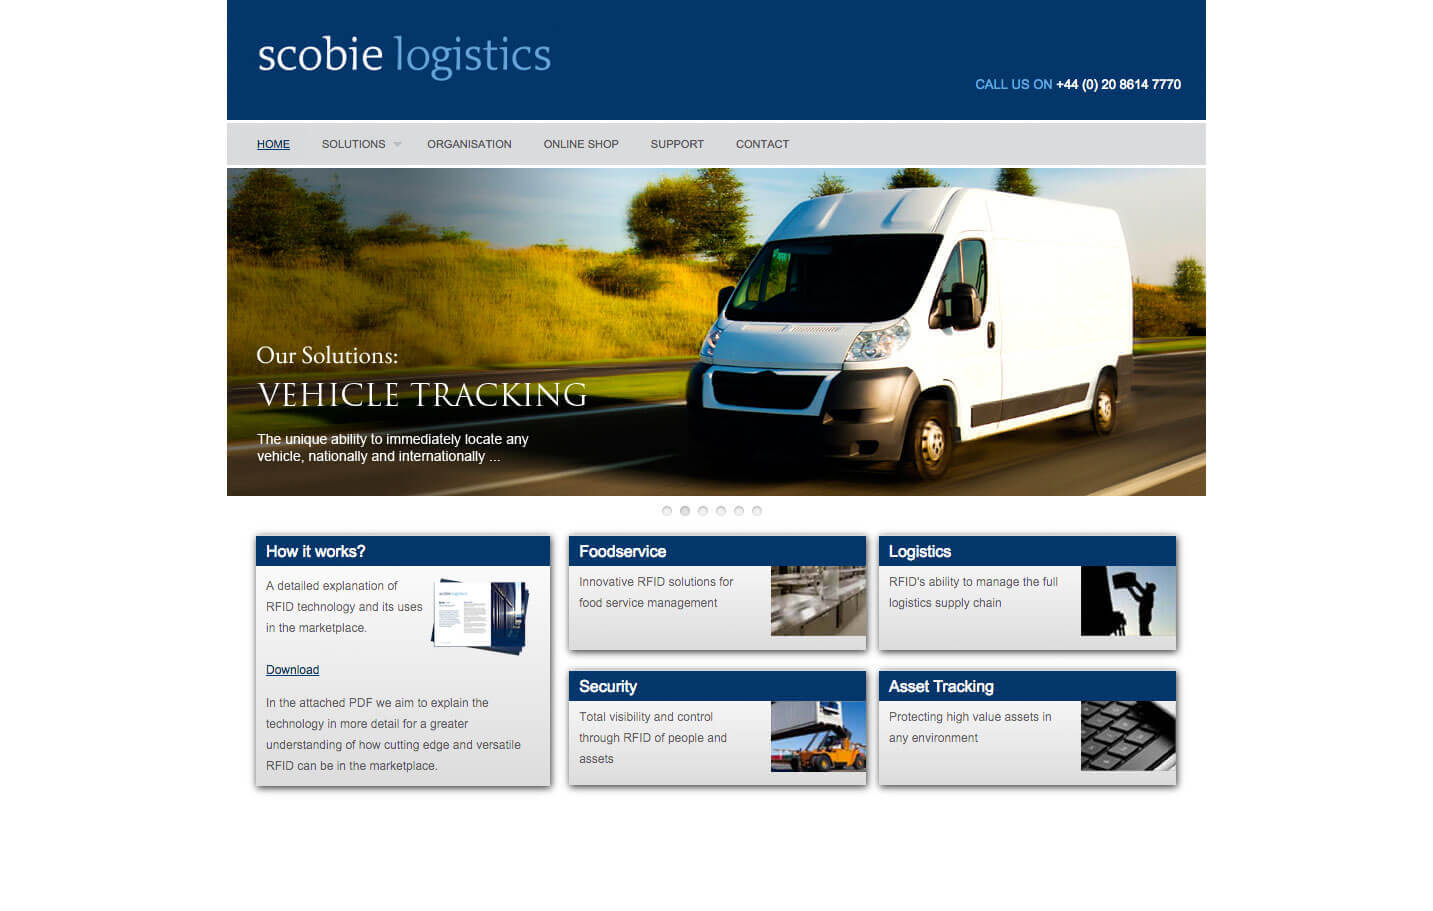 Scobie Logistics - Home page